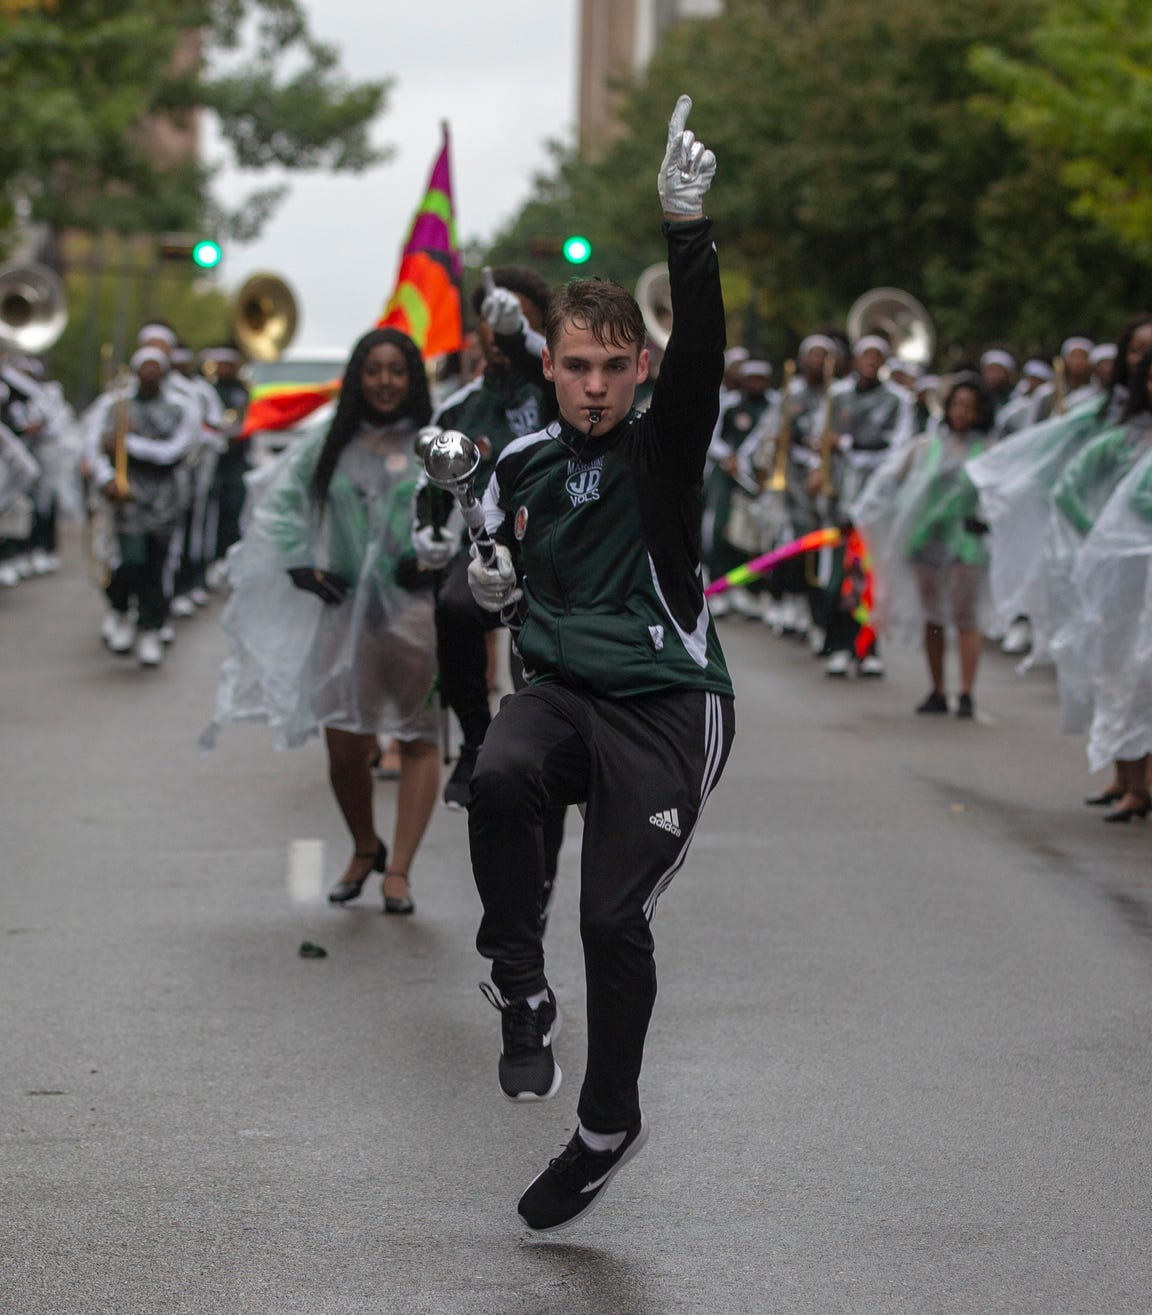 Dozens of marching bands, dance teams and representatives from Alabama State University and Alabama A&M participated in the annual Magic City Classic parade in downtown Birmingham.